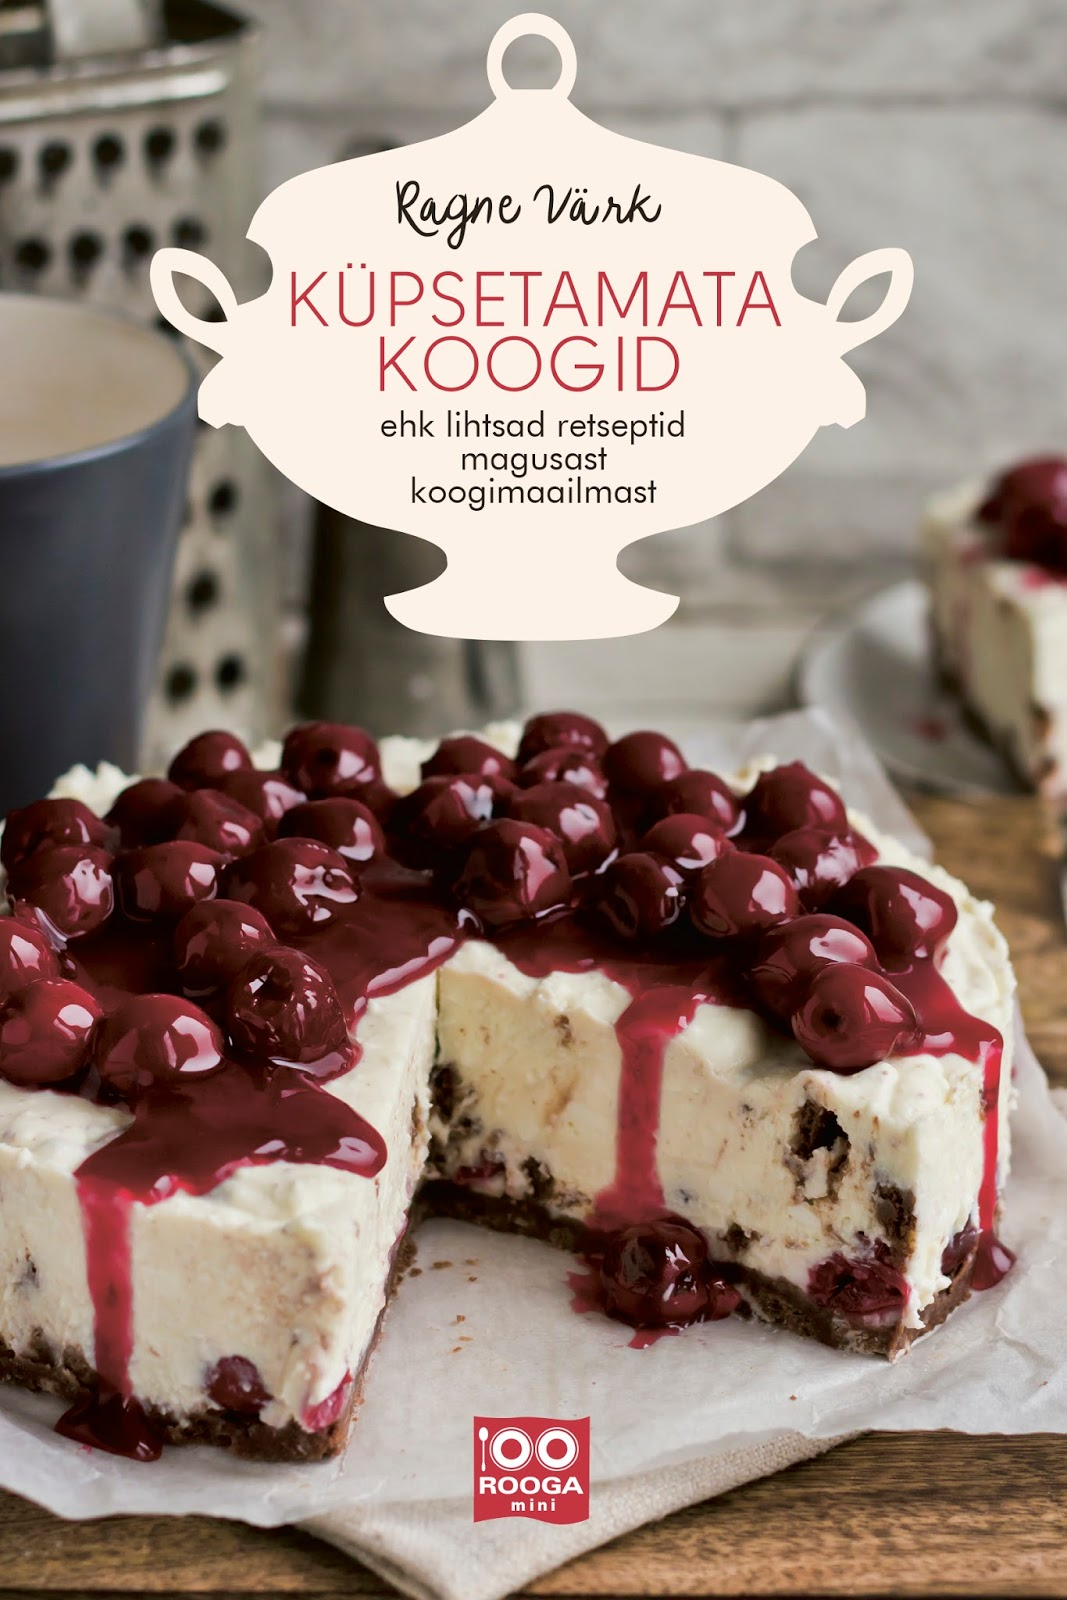 Küpsetamata koogid